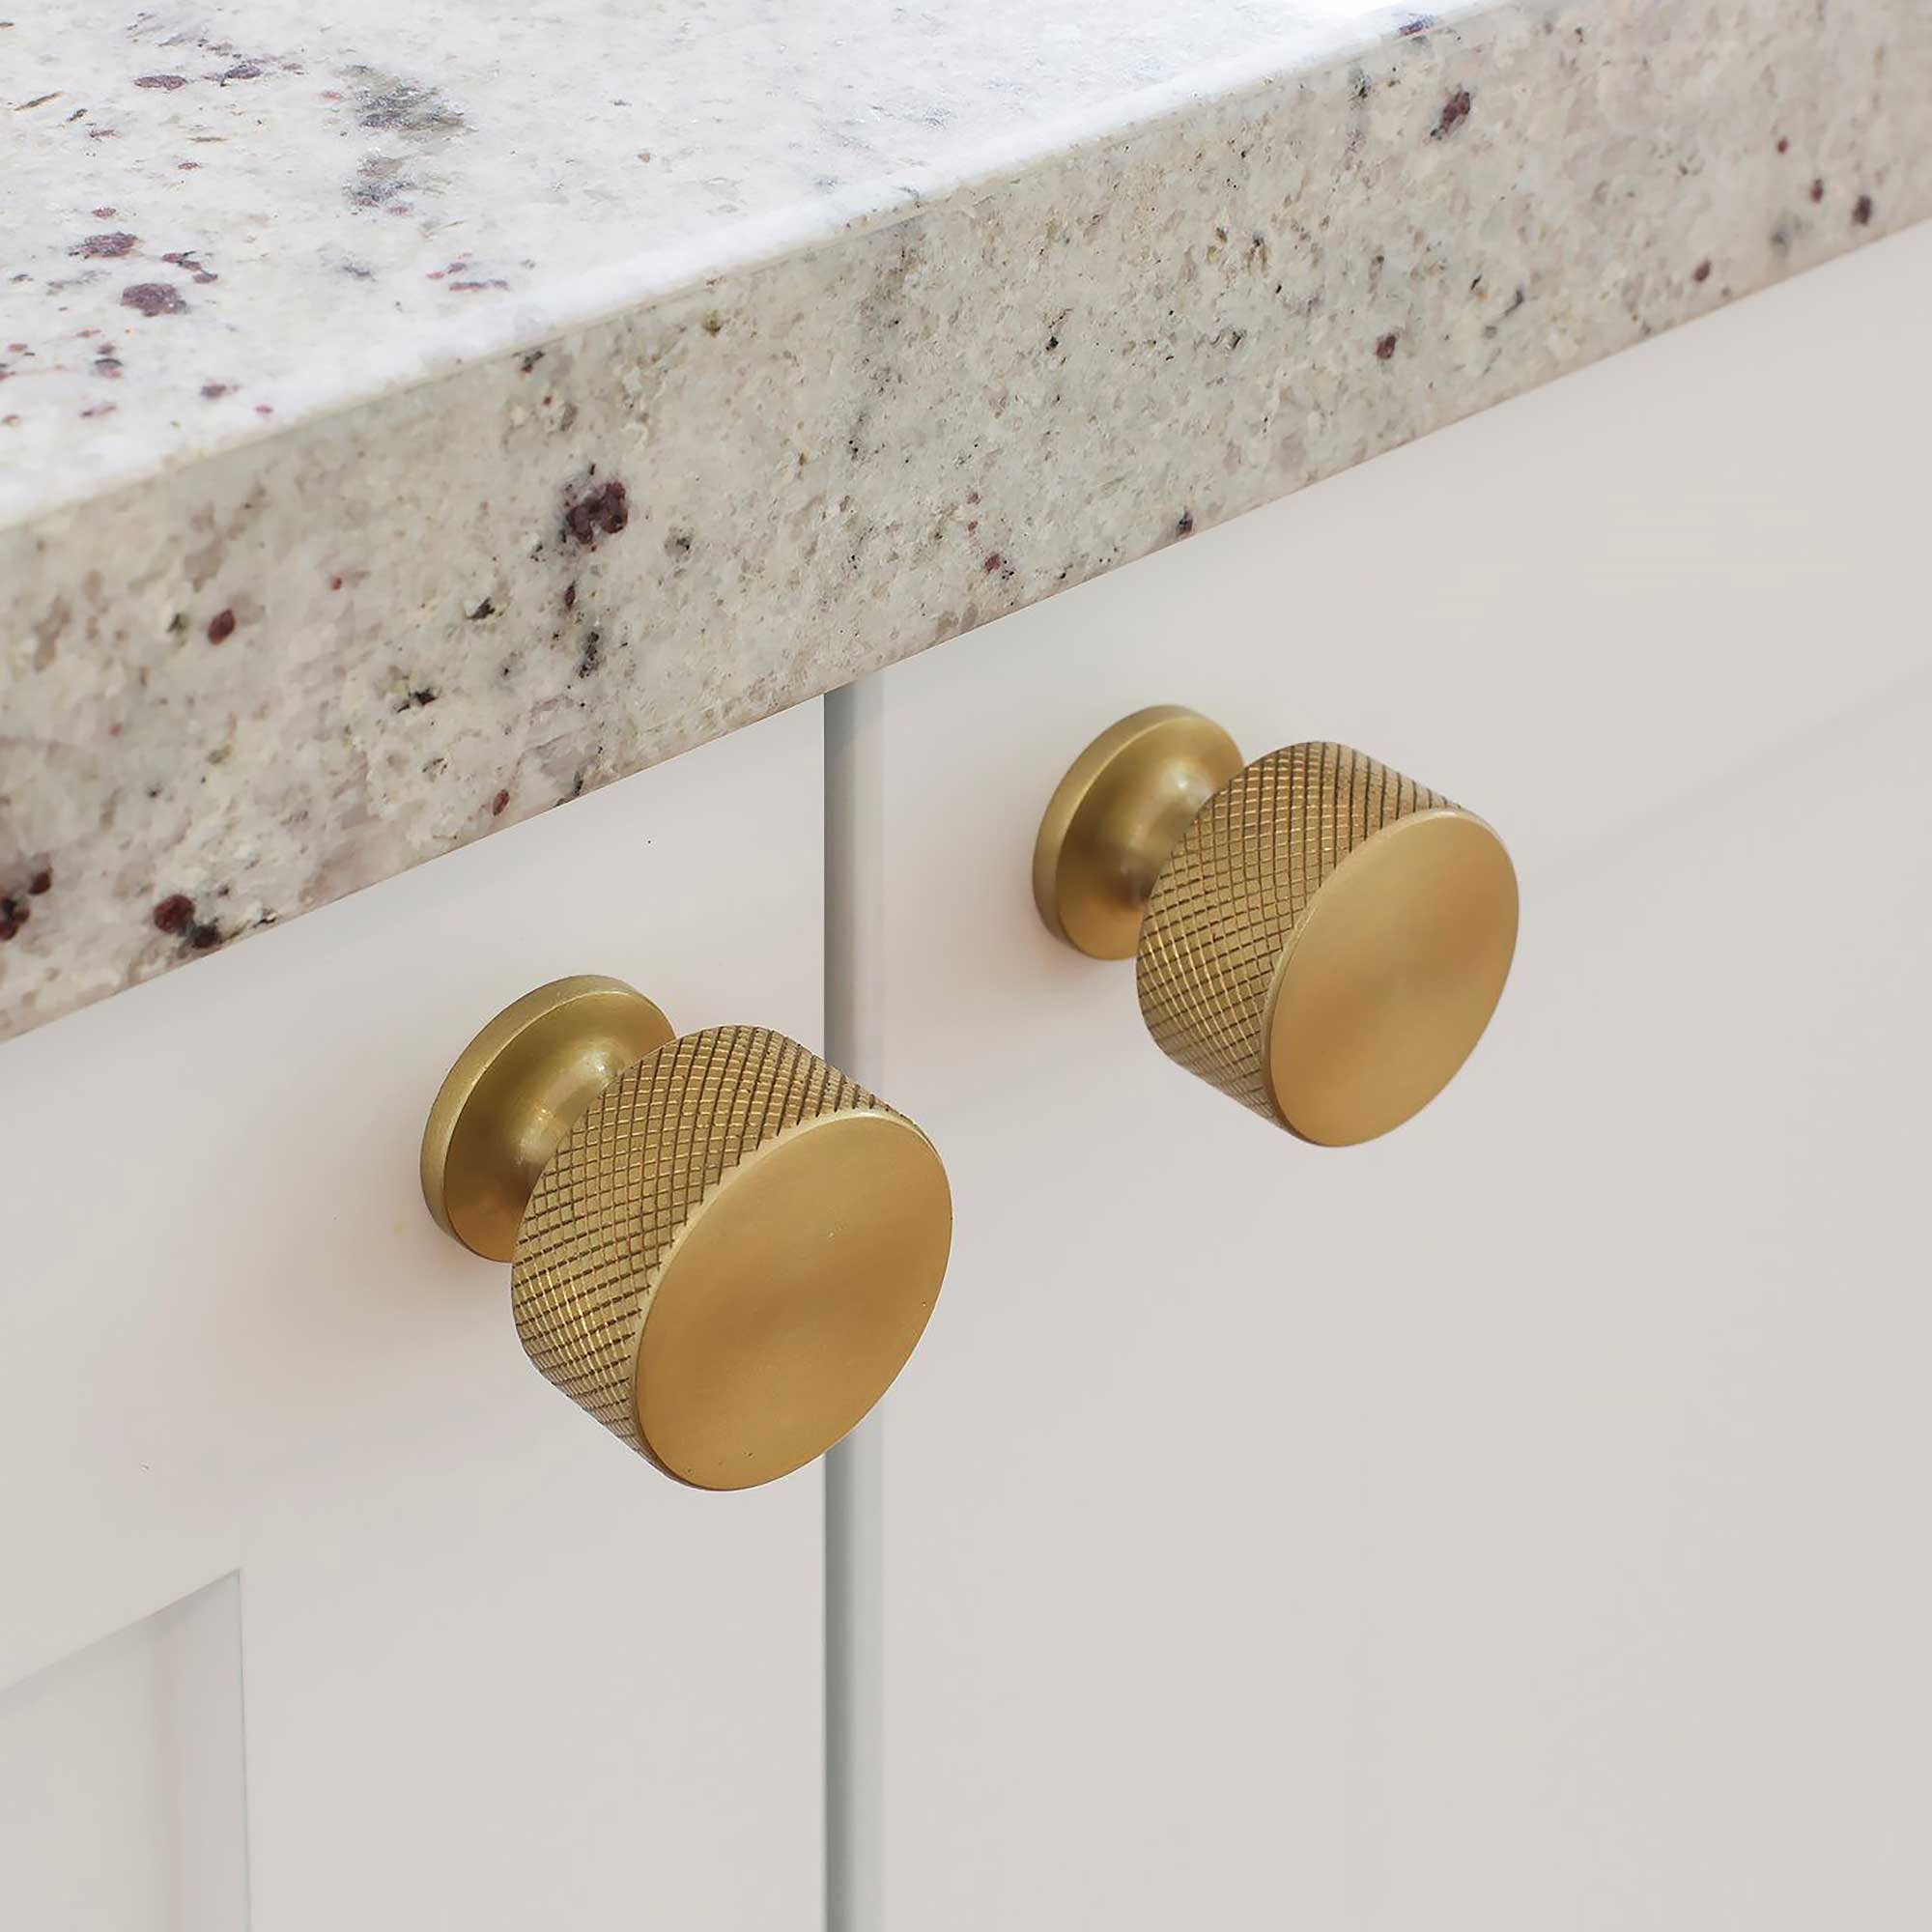 Armac Martin kitchen handles by Hubble